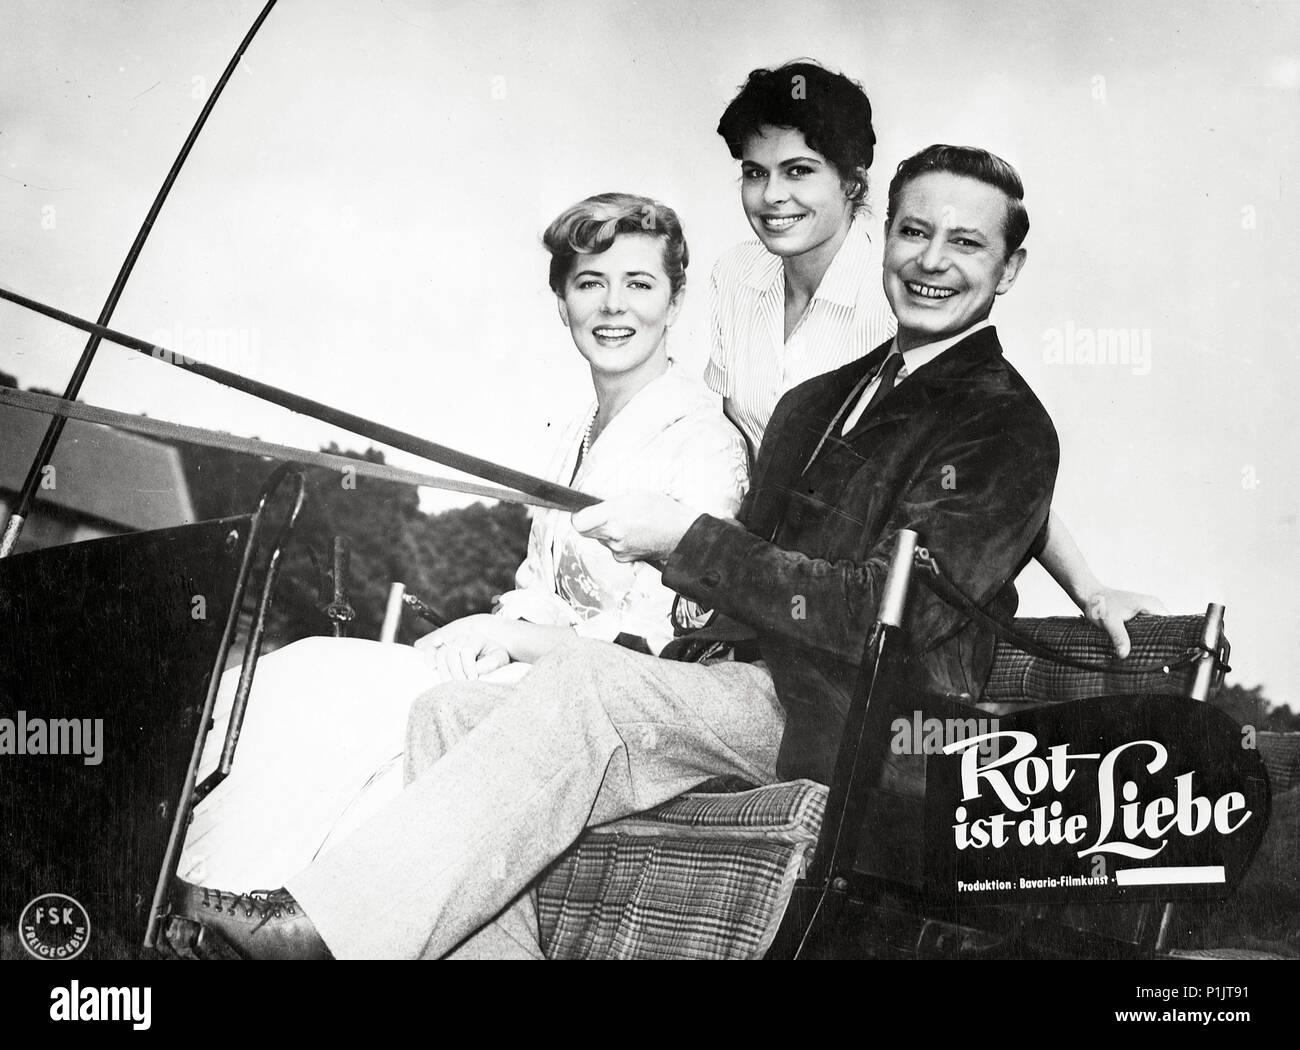 Original Film Title: ROT IST DIE LIEBE.  English Title: ROT IST DIE LIEBE.  Film Director: KARL HARTL.  Year: 1957.  Stars: DIETER BORSCHE; CORNELL BORCHERS; BARBARA RUTTING. - Stock Image